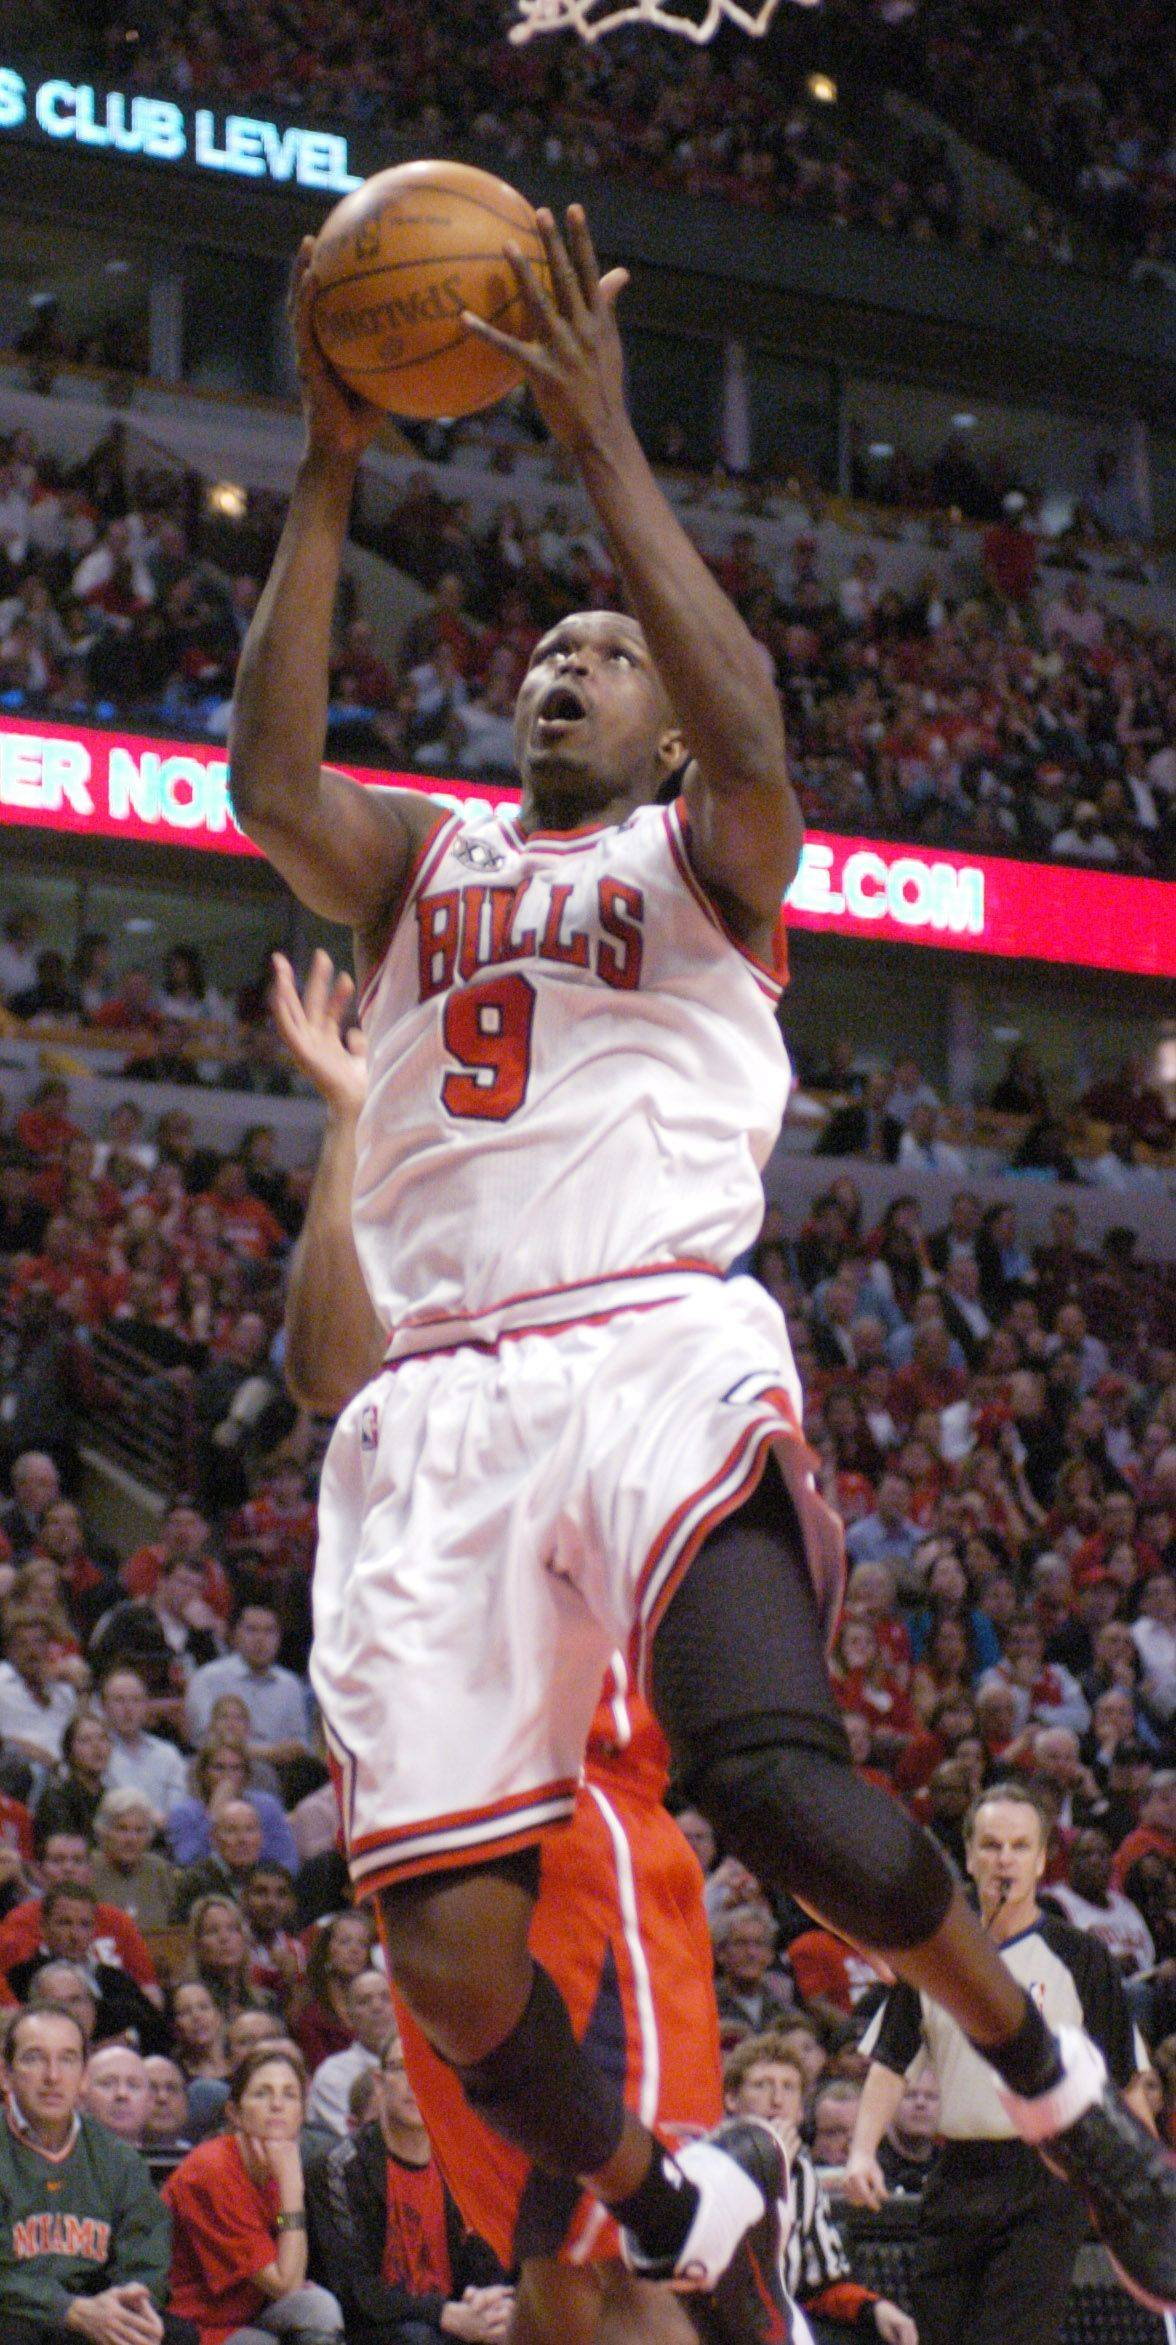 Luol Deng drives to the basket Wednesday against the Hawks.